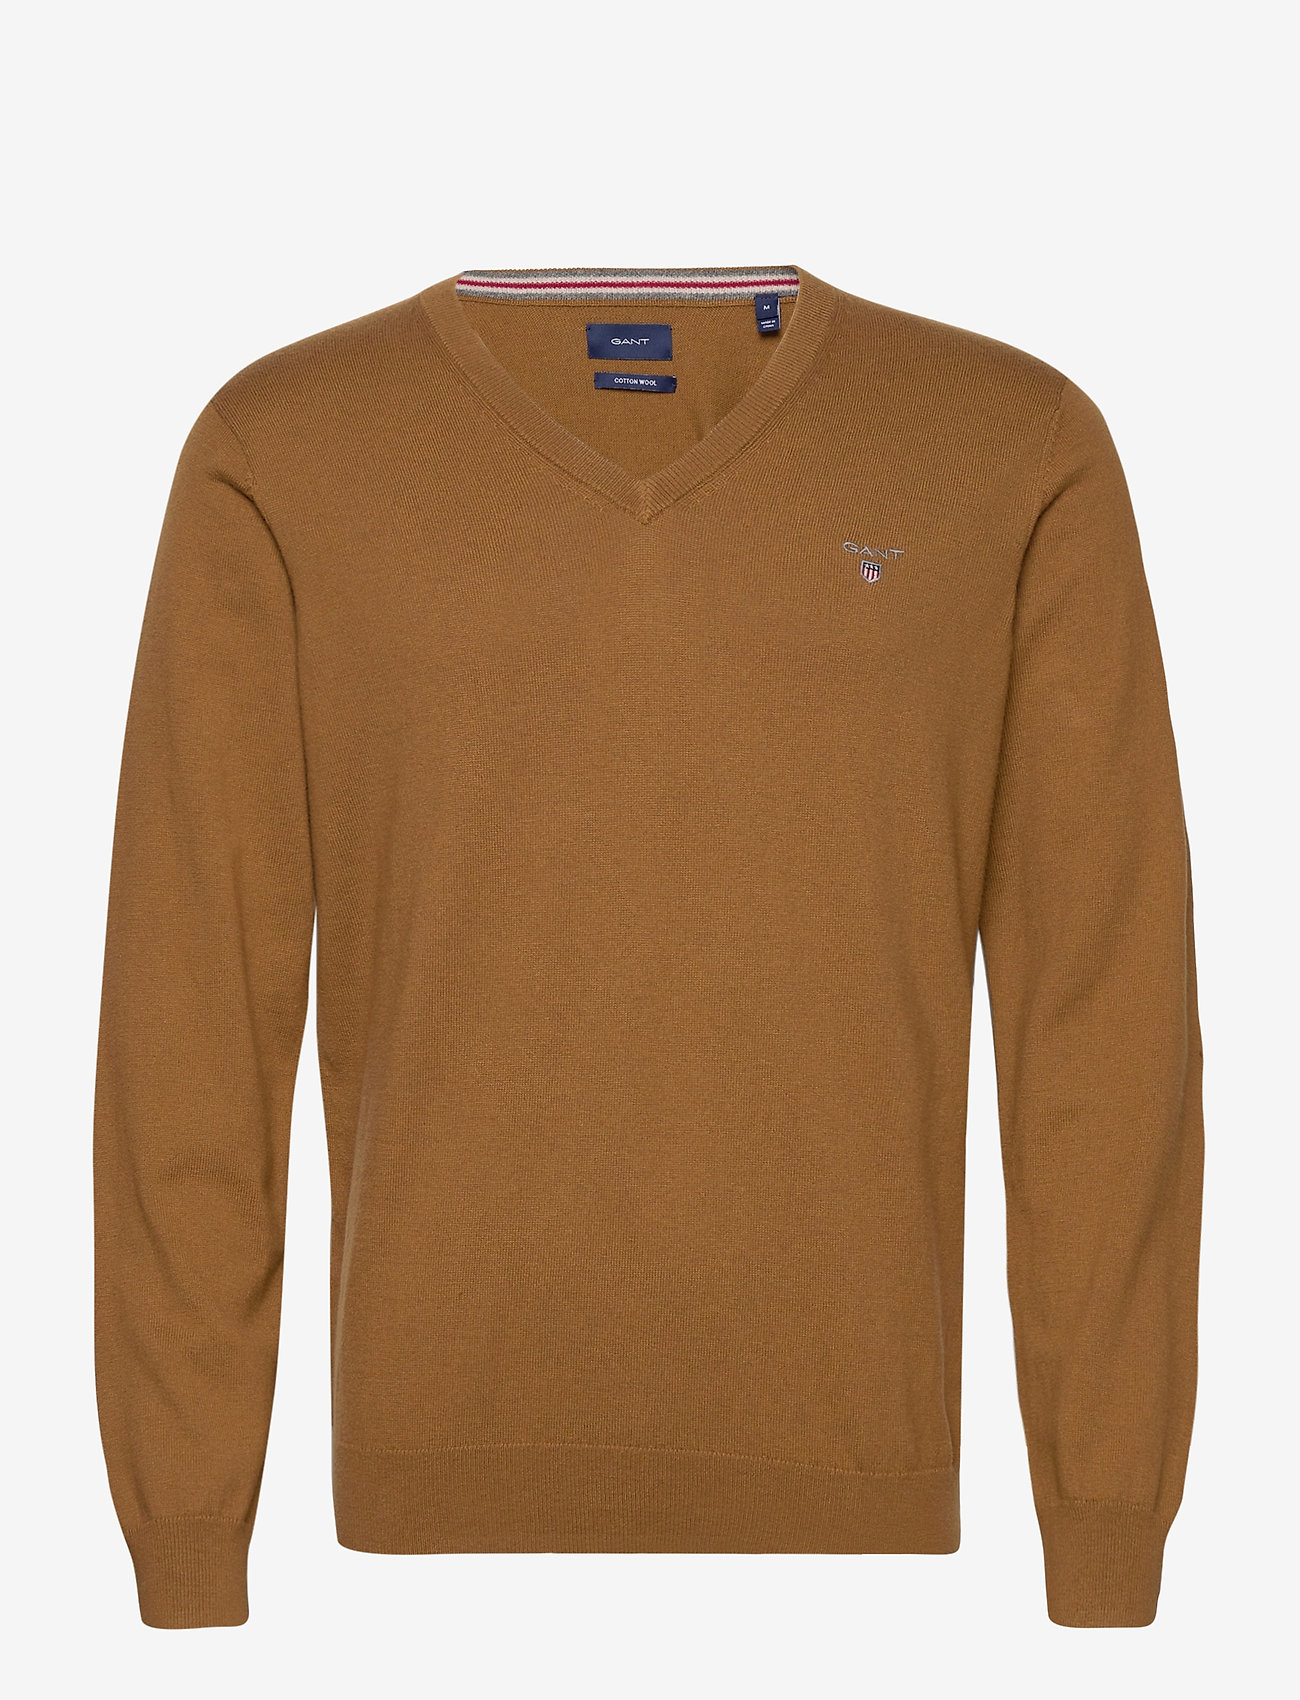 GANT - COTTON WOOL V-NECK - knitted v-necks - butternut melange - 0